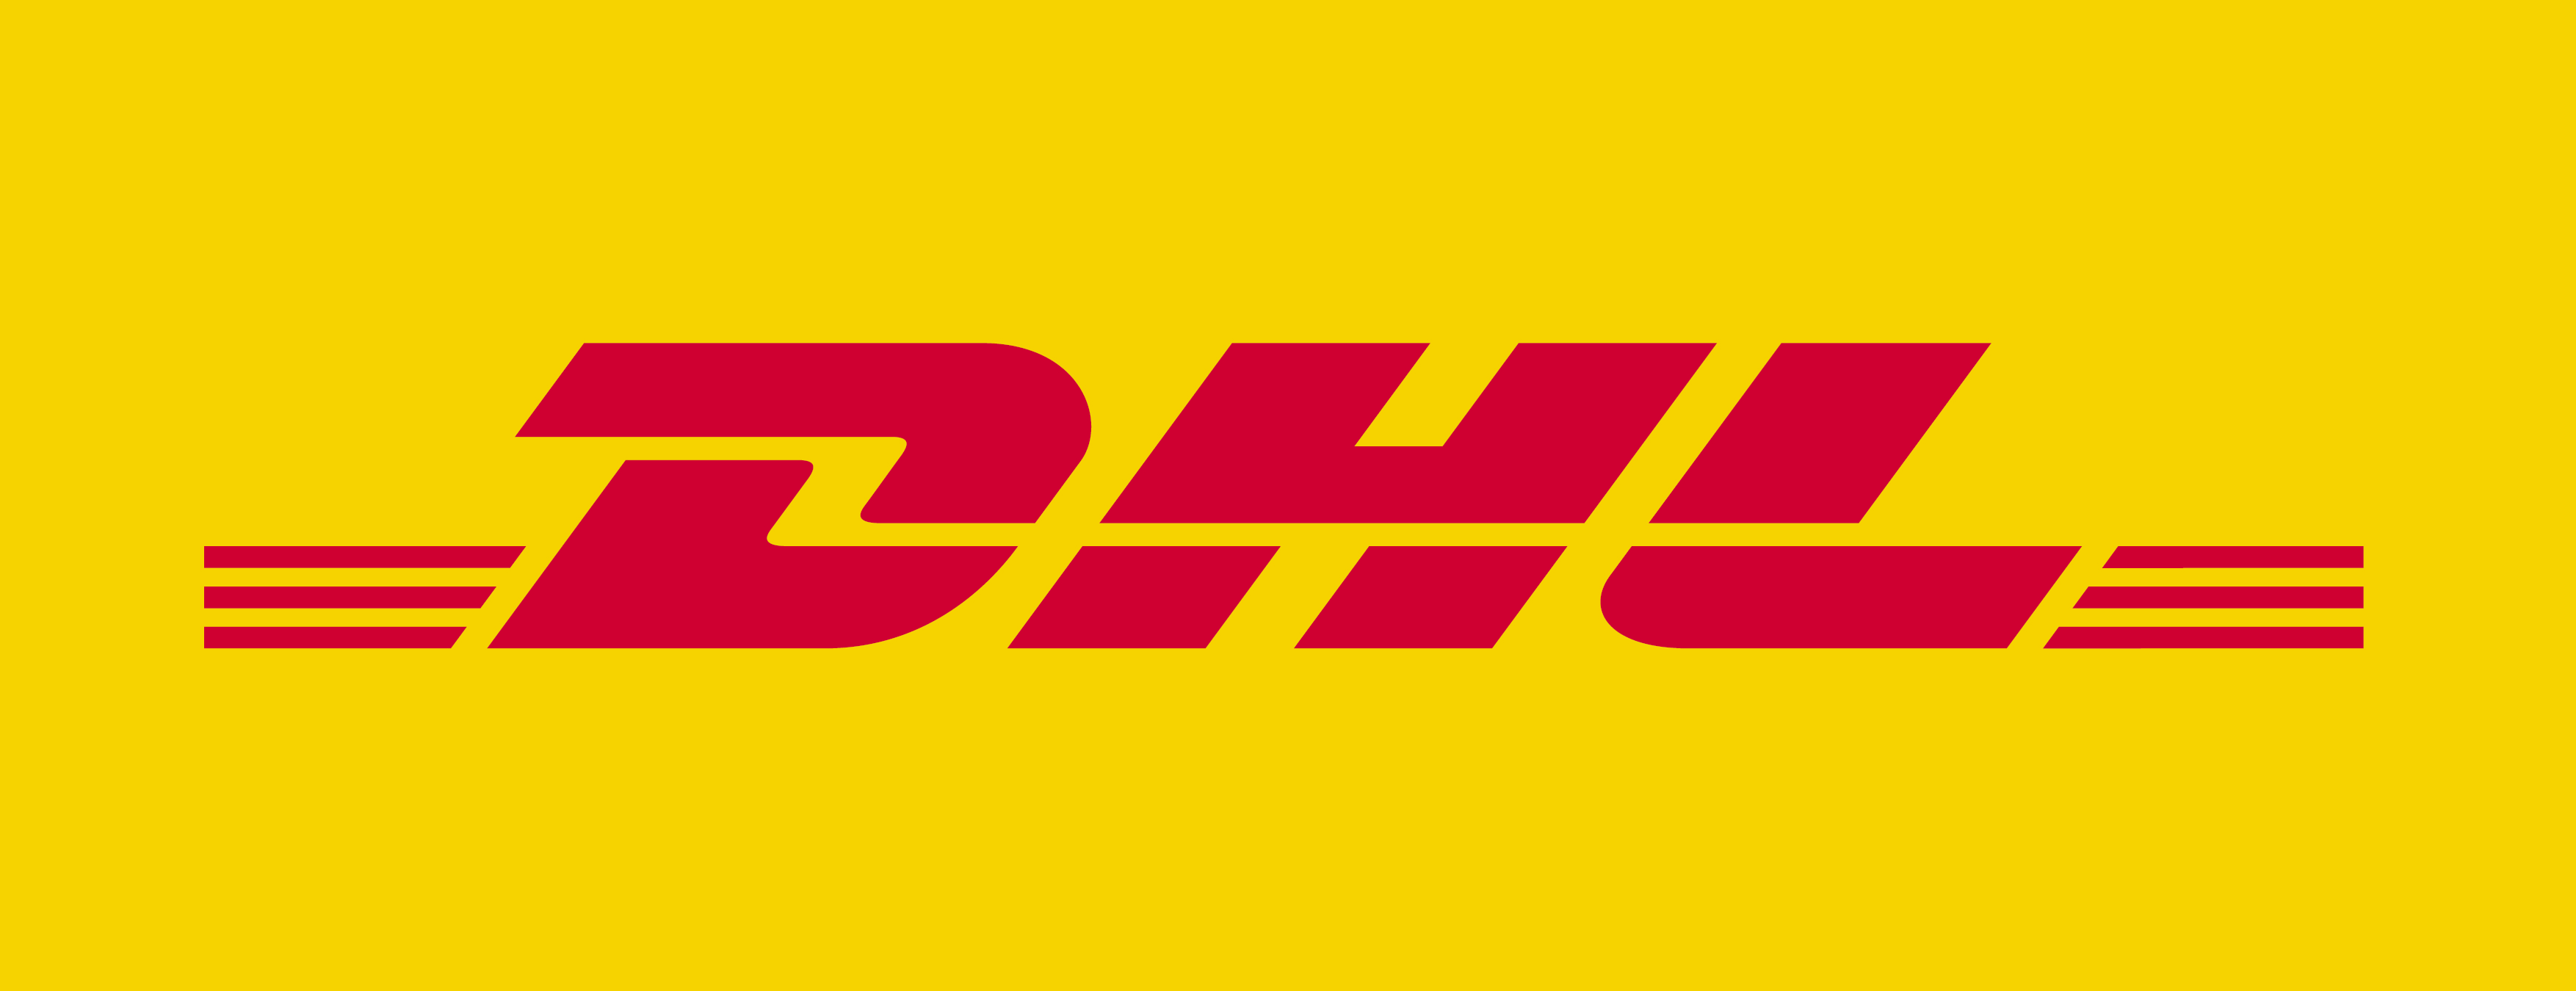 dhl png transparent dhl png images pluspng Cool Globe Graphics Free Illustrator Globe EPS